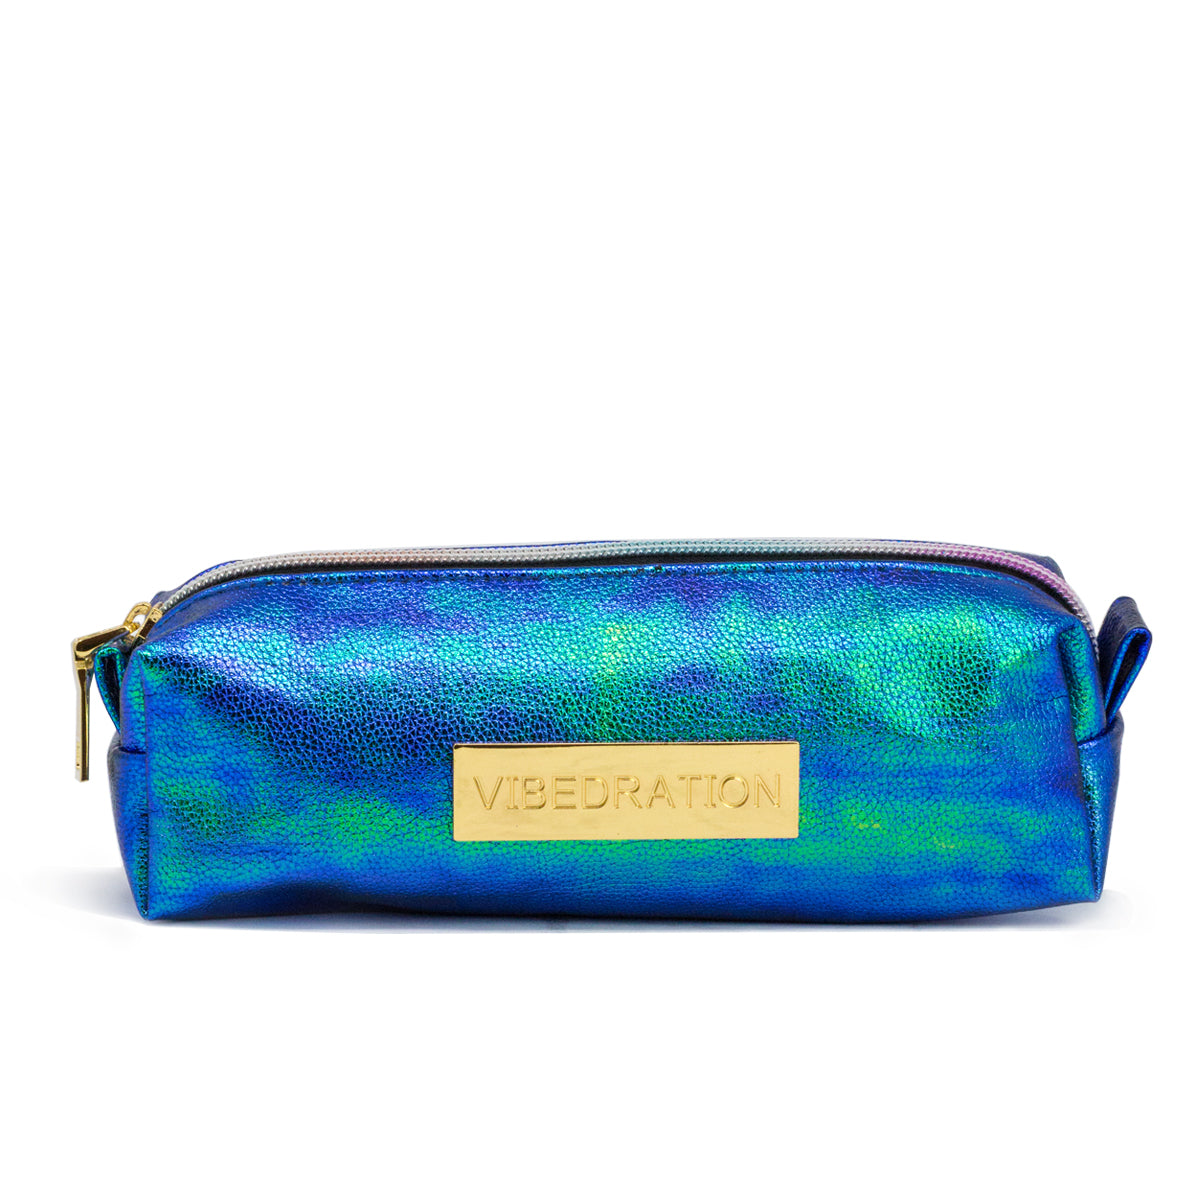 Blue and green mermaid cosmetic bag